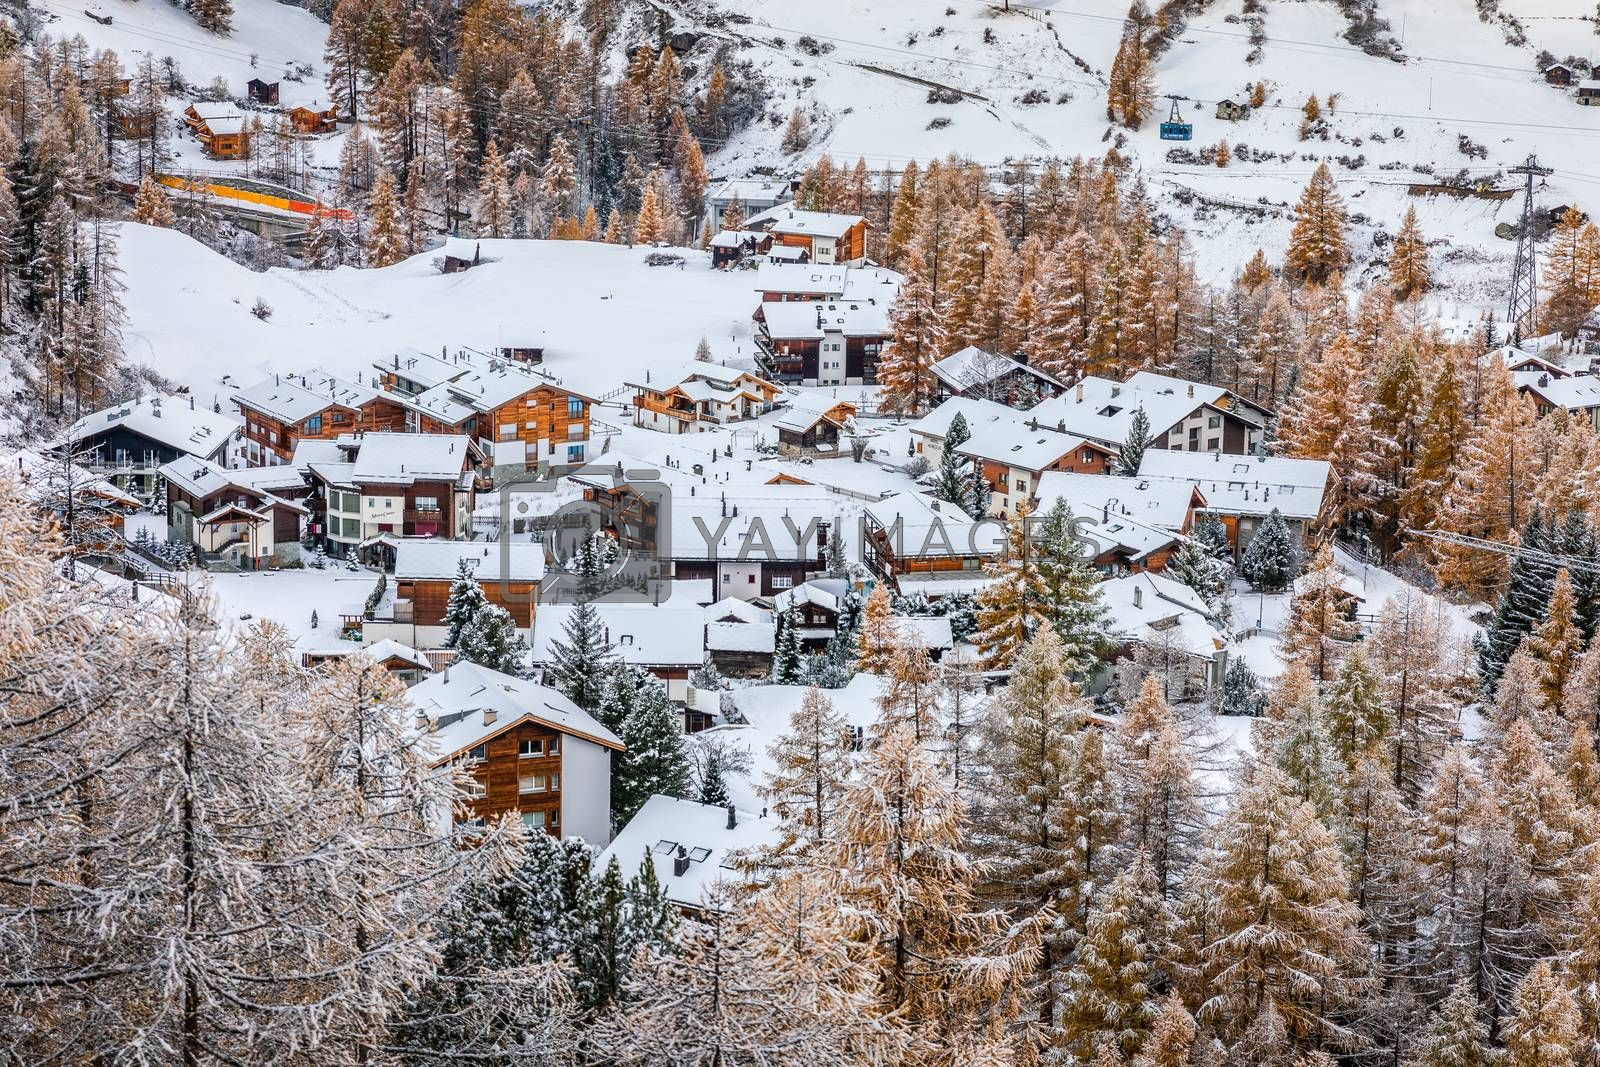 Aerial view over snow capped village on hill slope inside pine woods covered by snow in winter, Zermatt, Switzerland.